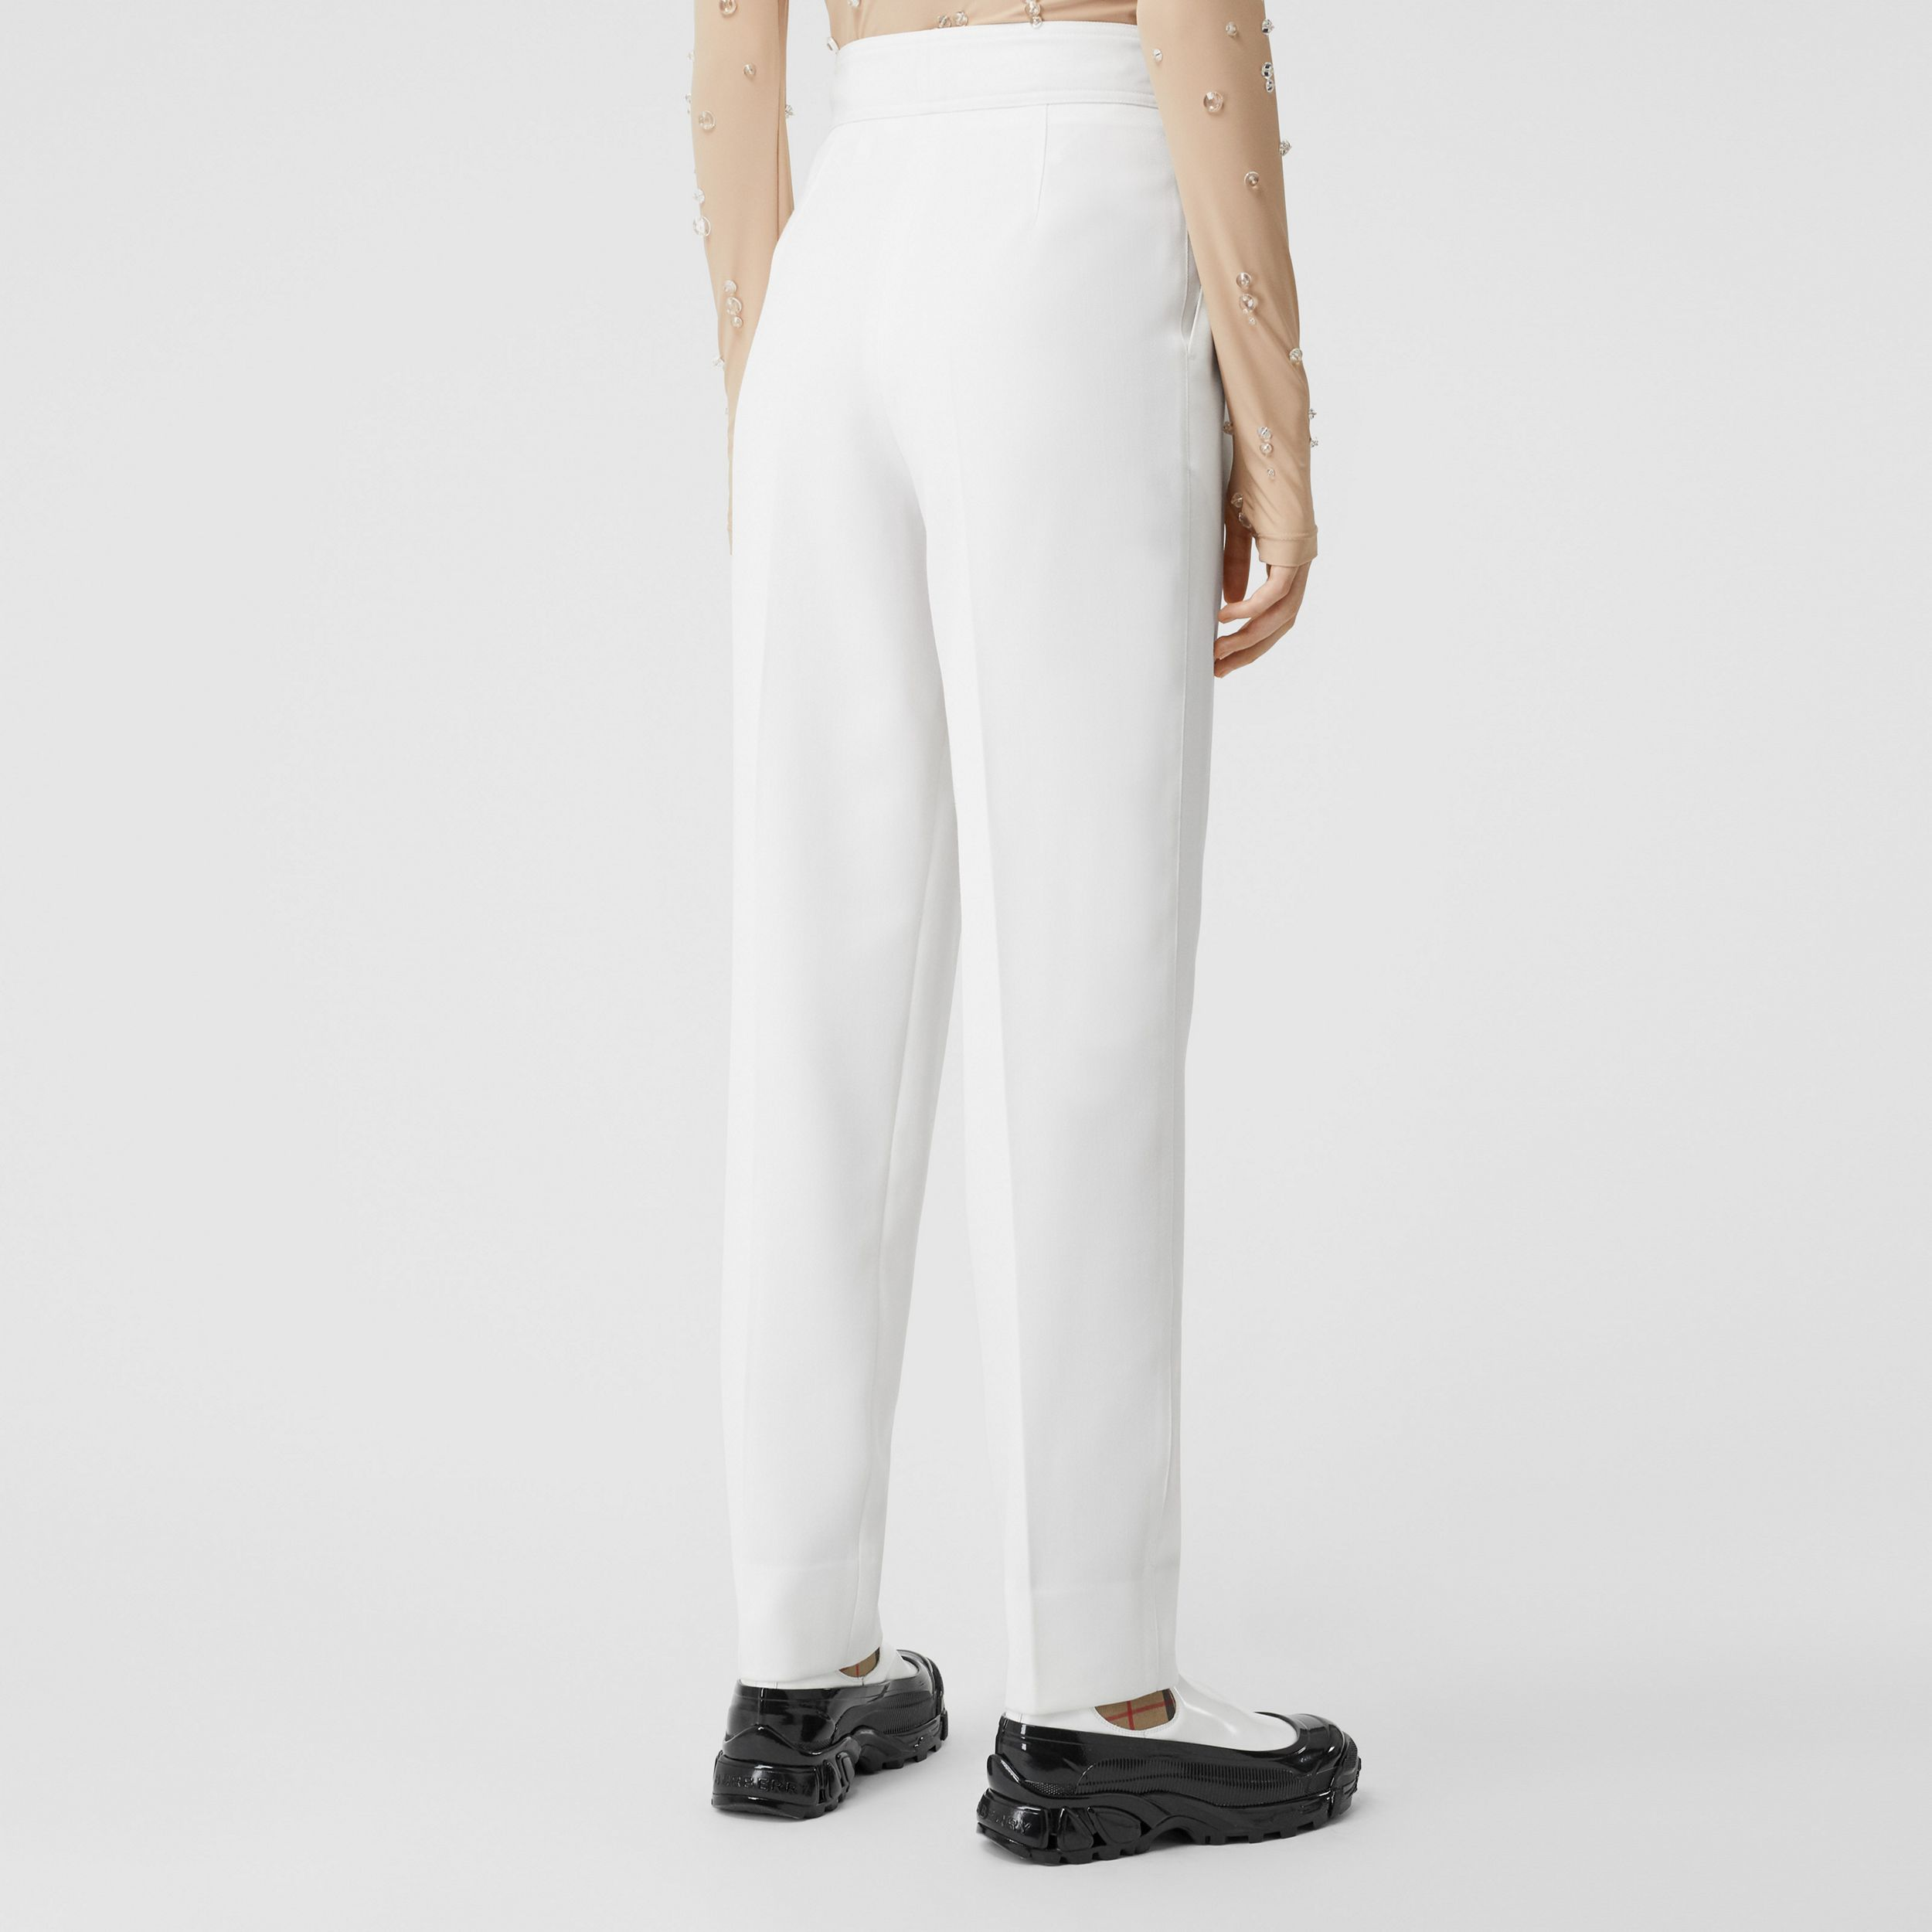 Location Print Wool Blend Tailored Trousers in Optic White - Women | Burberry - 3